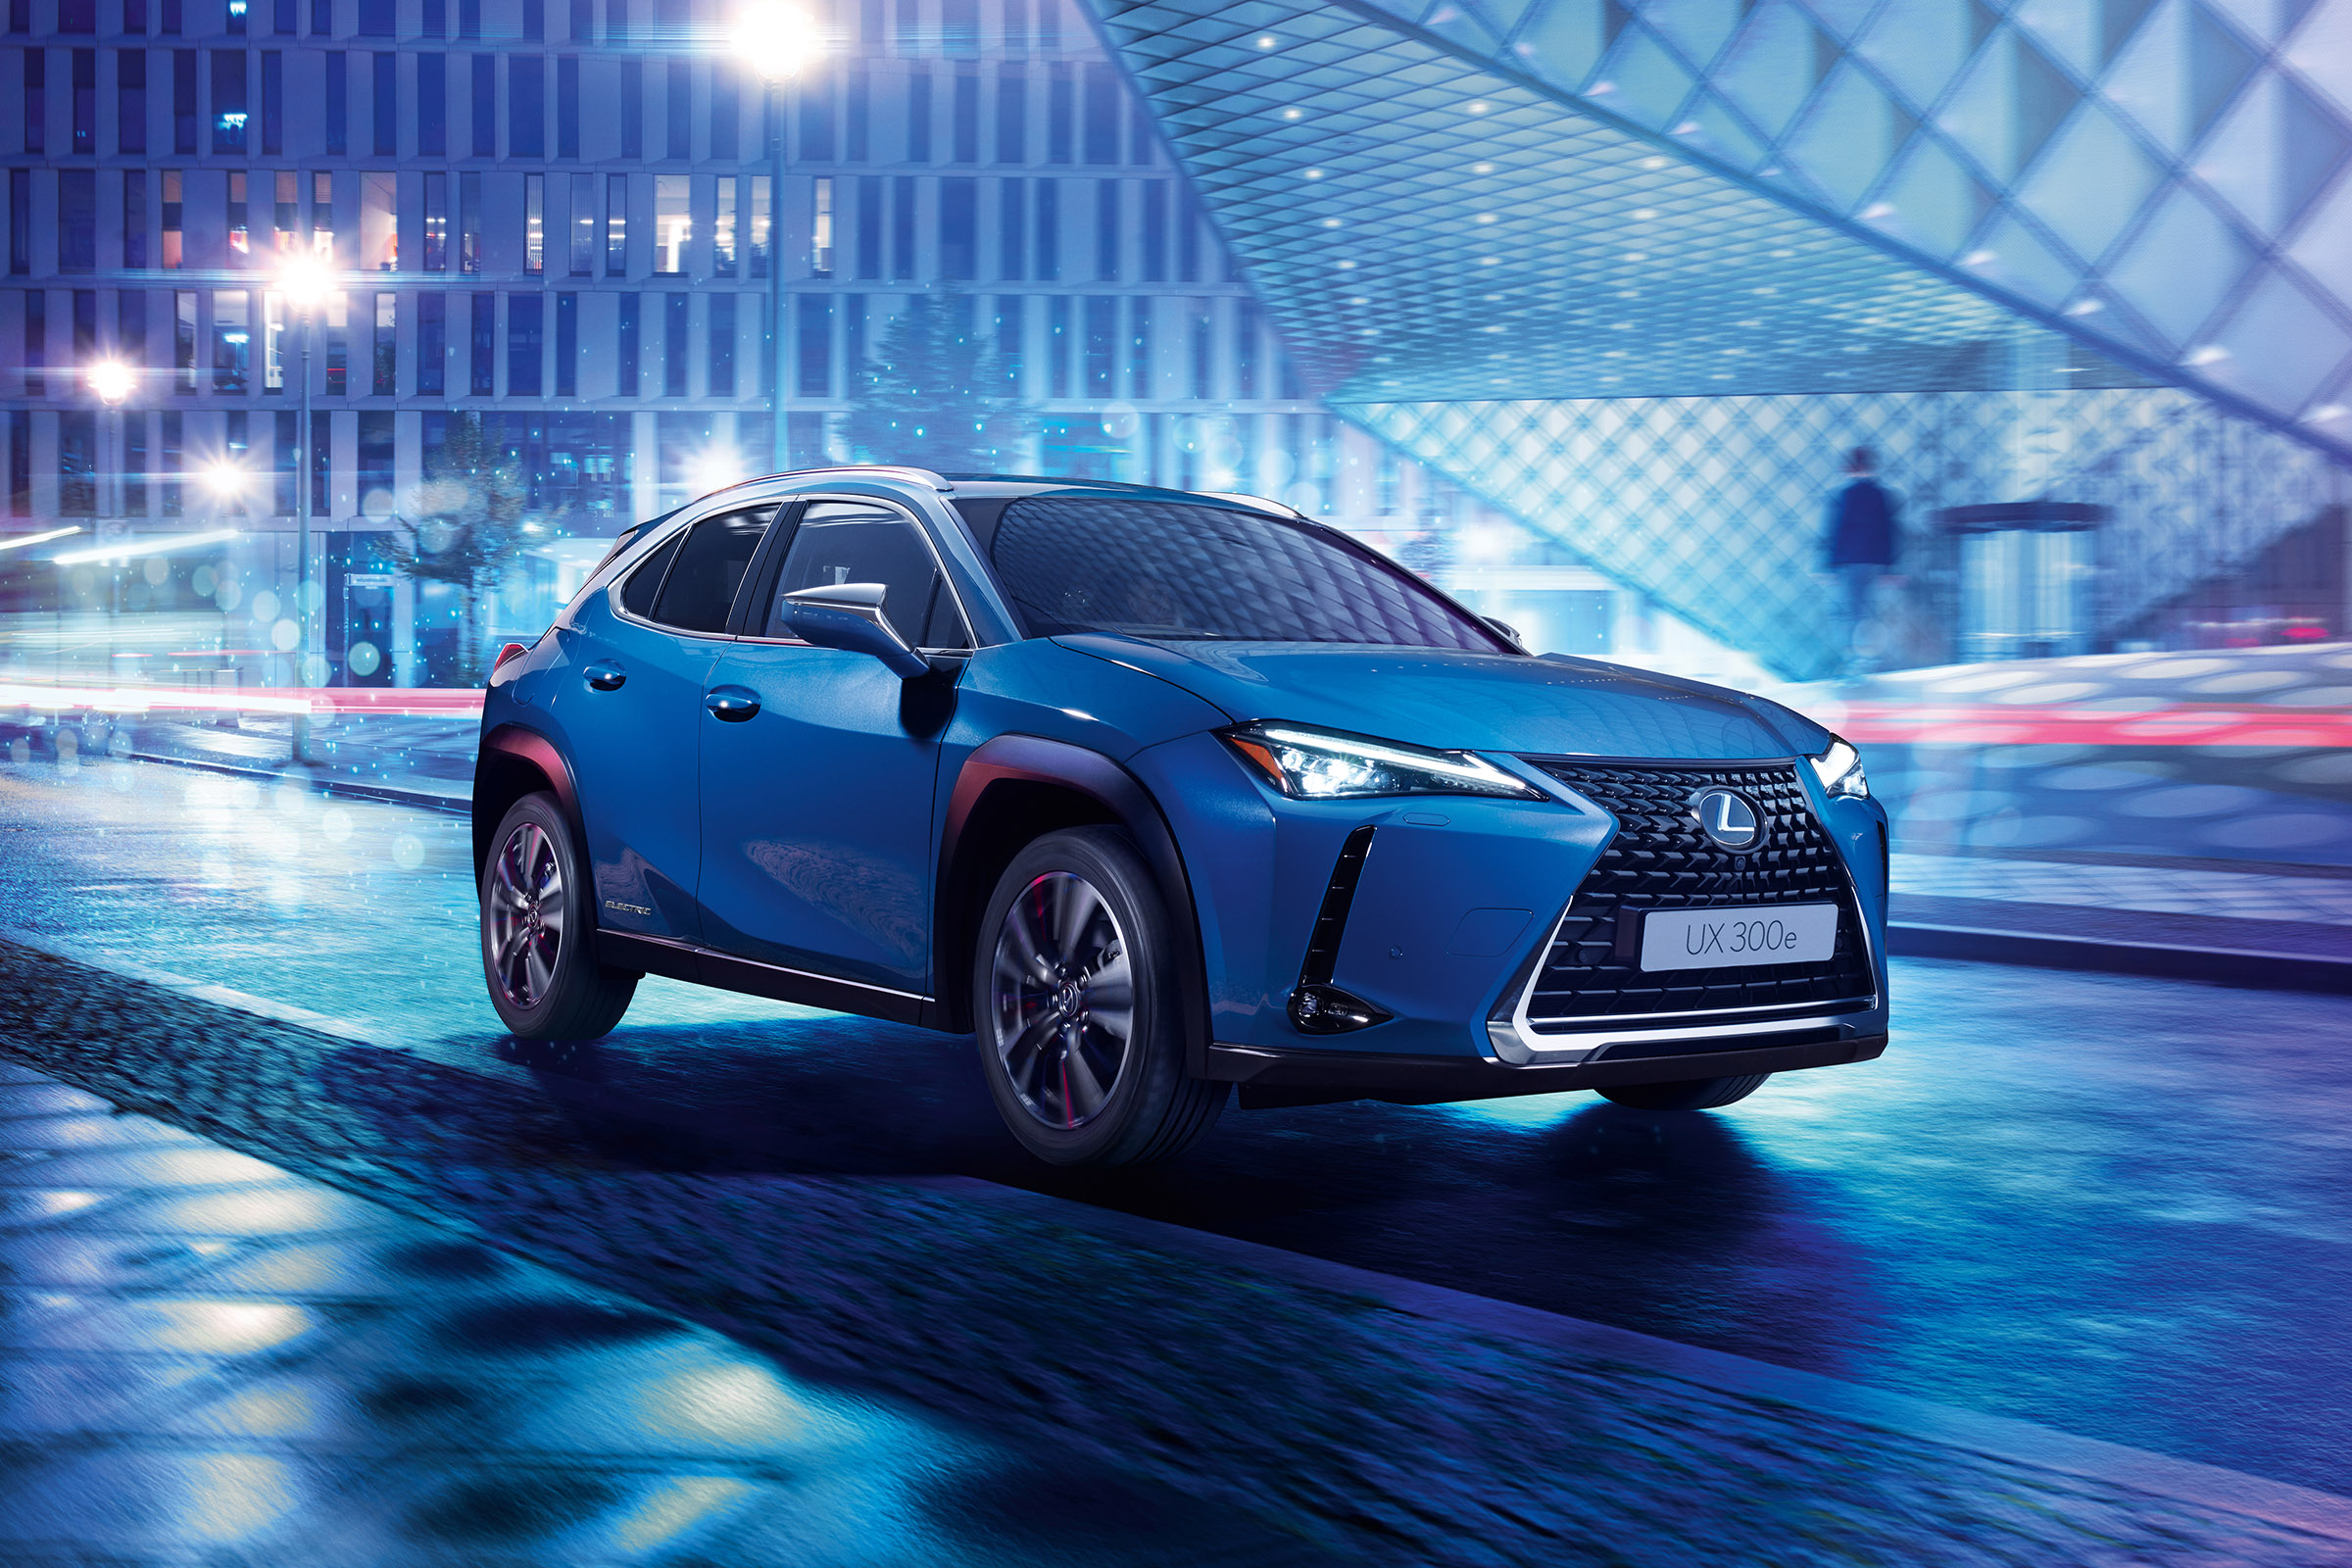 2021 Lexus Ux 300e Electric Suv To Start From 40 900 Carbuyer